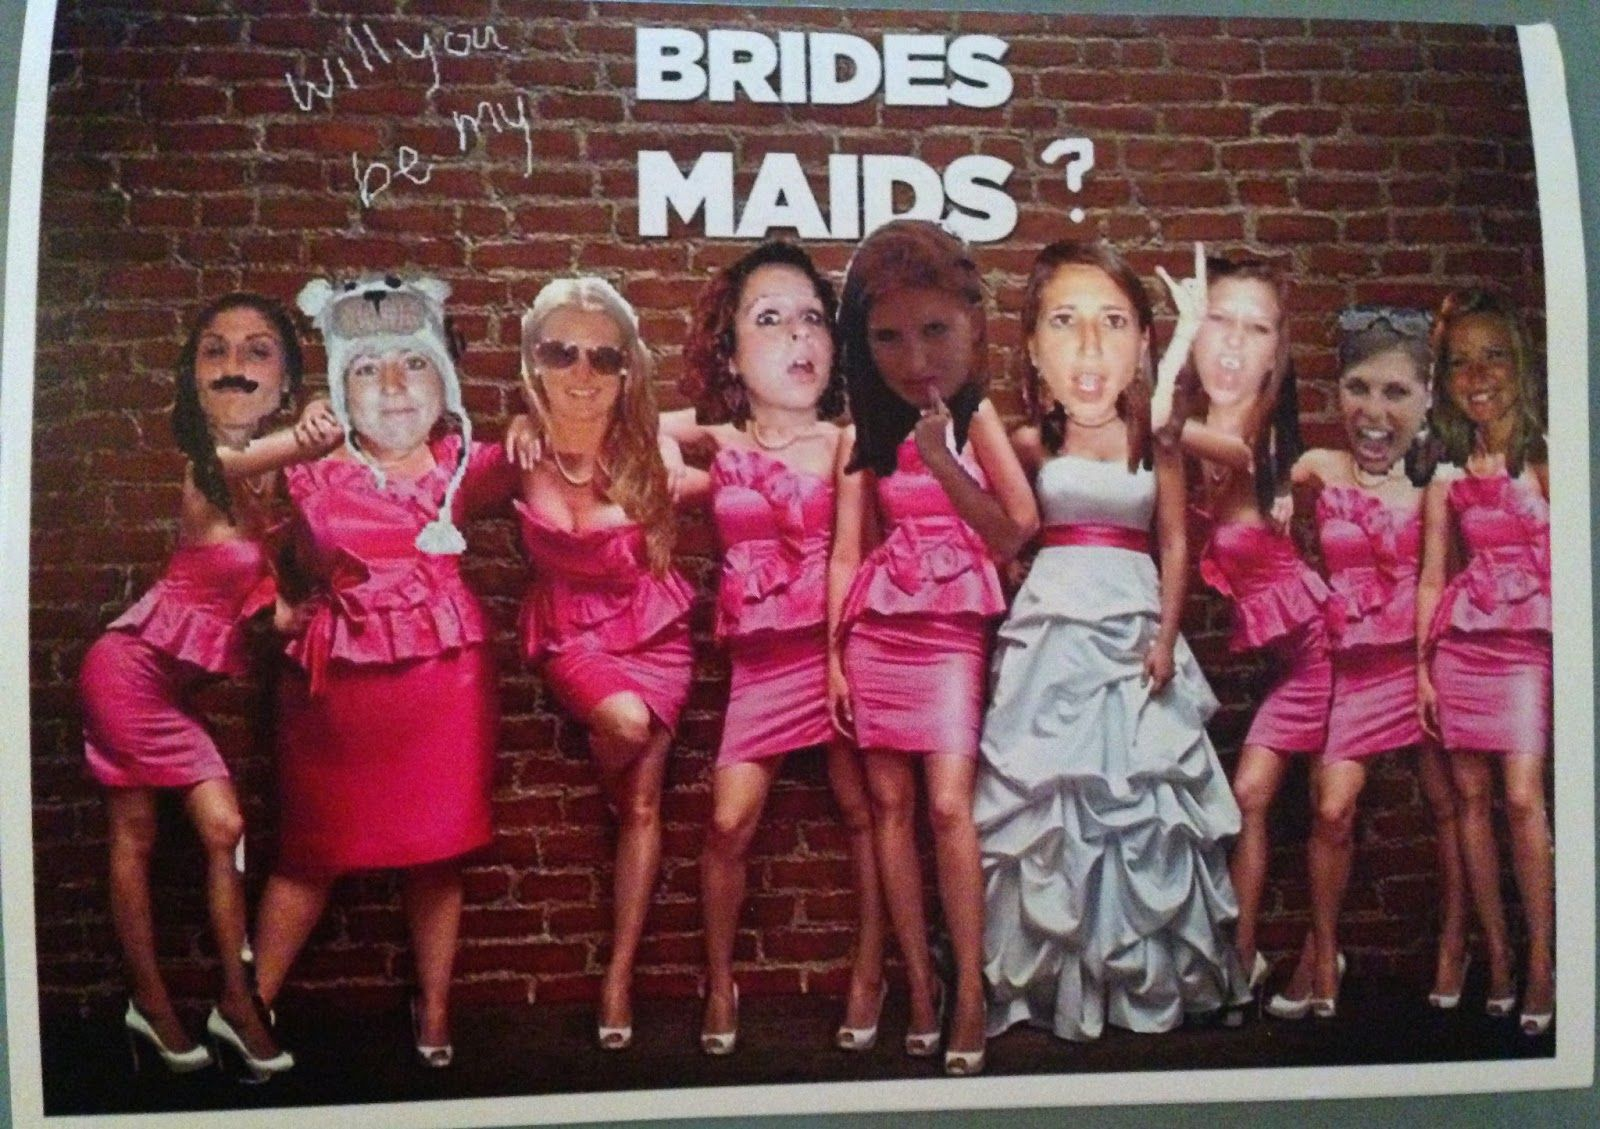 Friday 5: Ways To Ask Your Bridesmaids